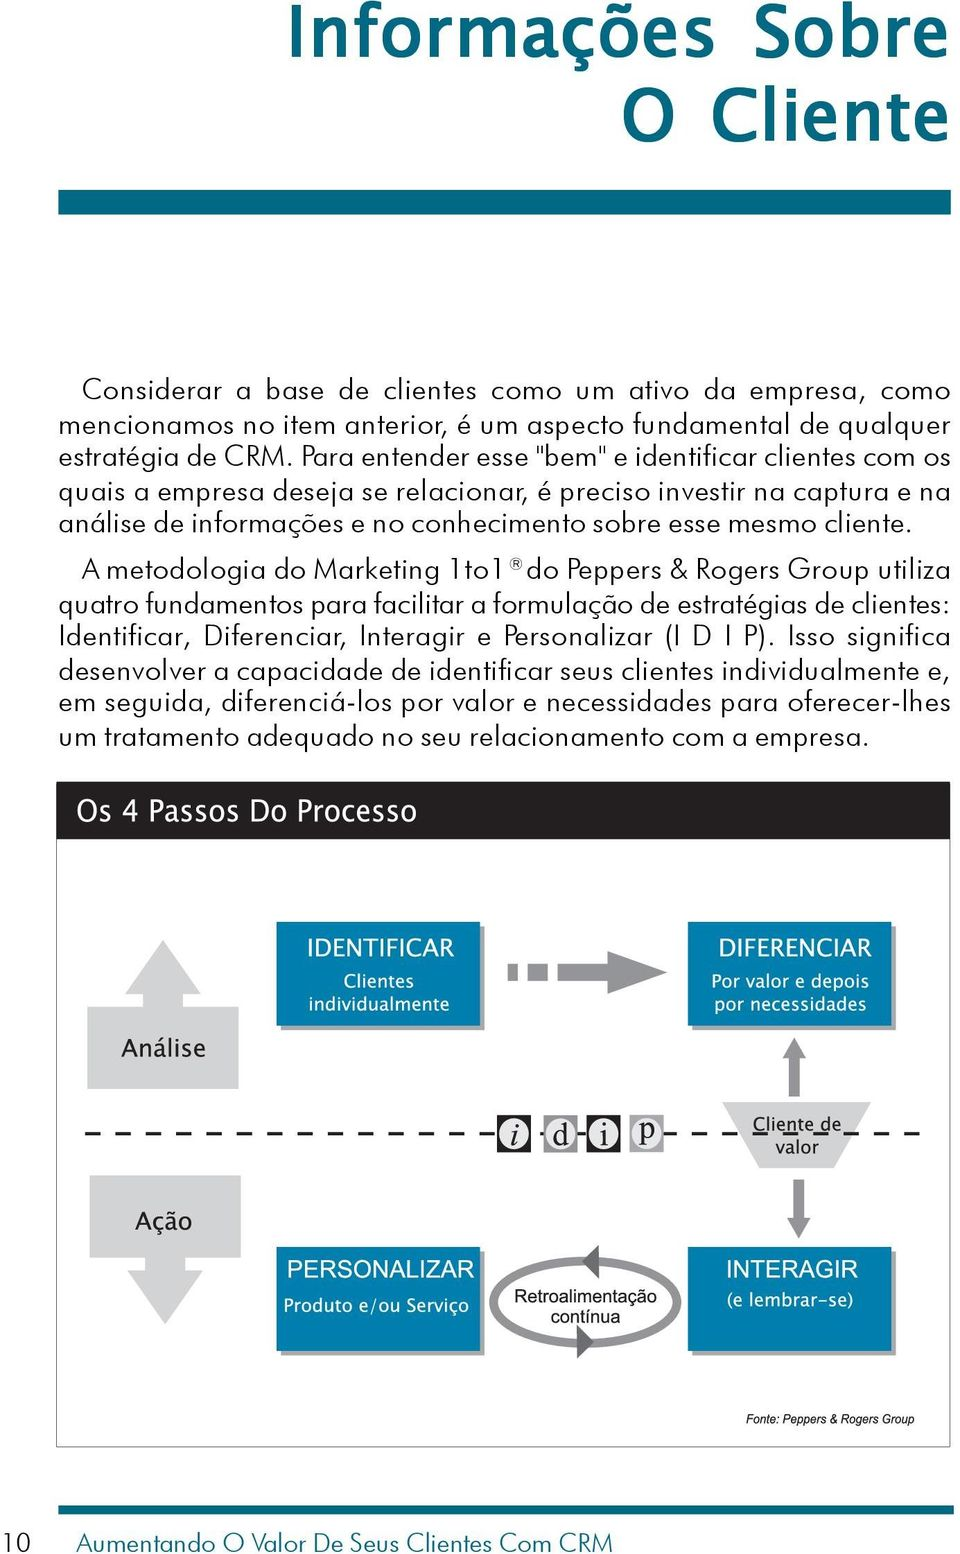 A metodologia do Marketing 1to1 do Peppers & Rogers Group utiliza quatro fundamentos para facilitar a formulação de estratégias de clientes: Identificar, Diferenciar, Interagir e Personalizar (I D I